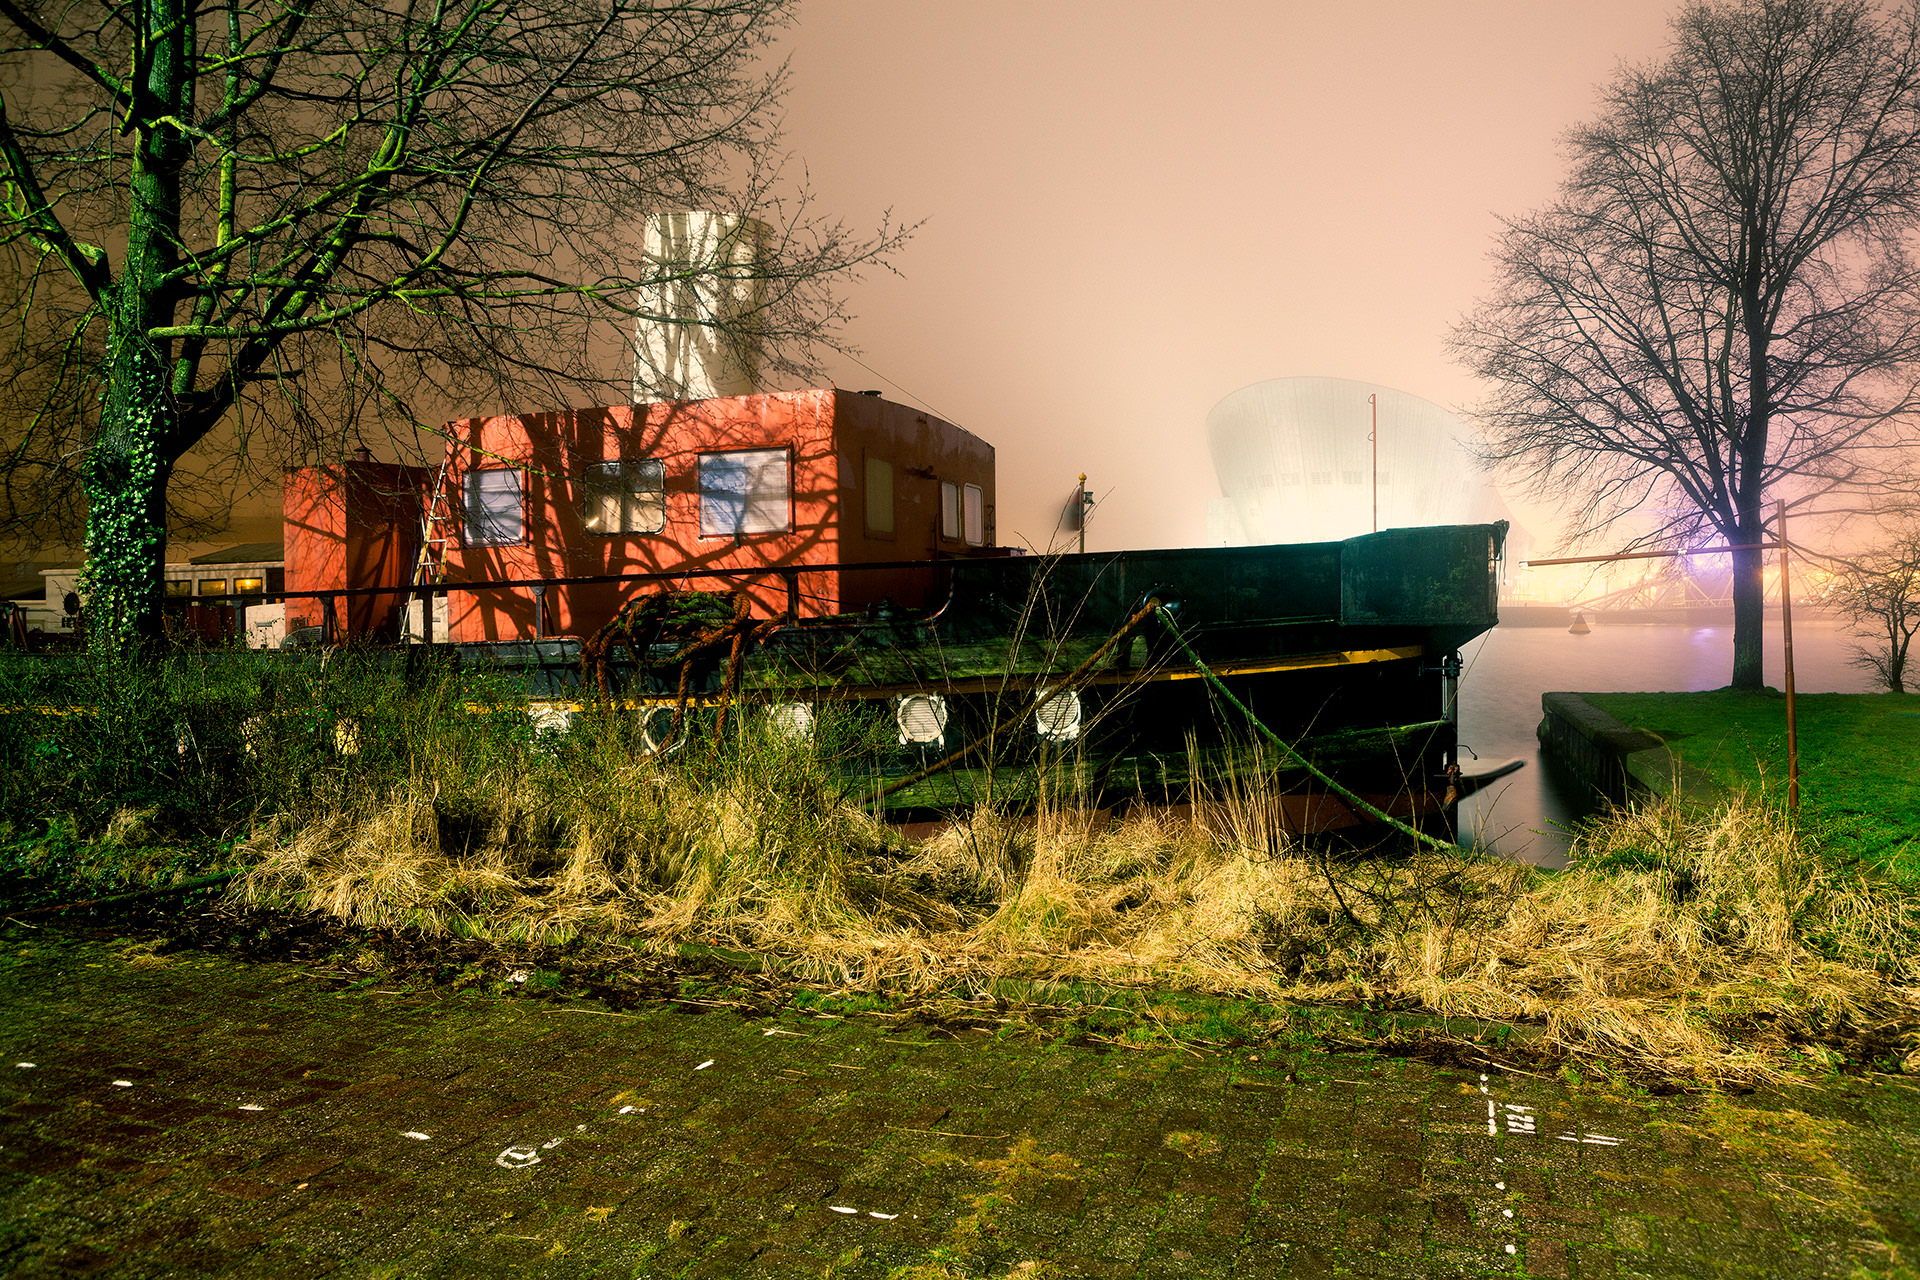 Nacht-boot-haven-amsterdam-fotografie-landschap.jpg